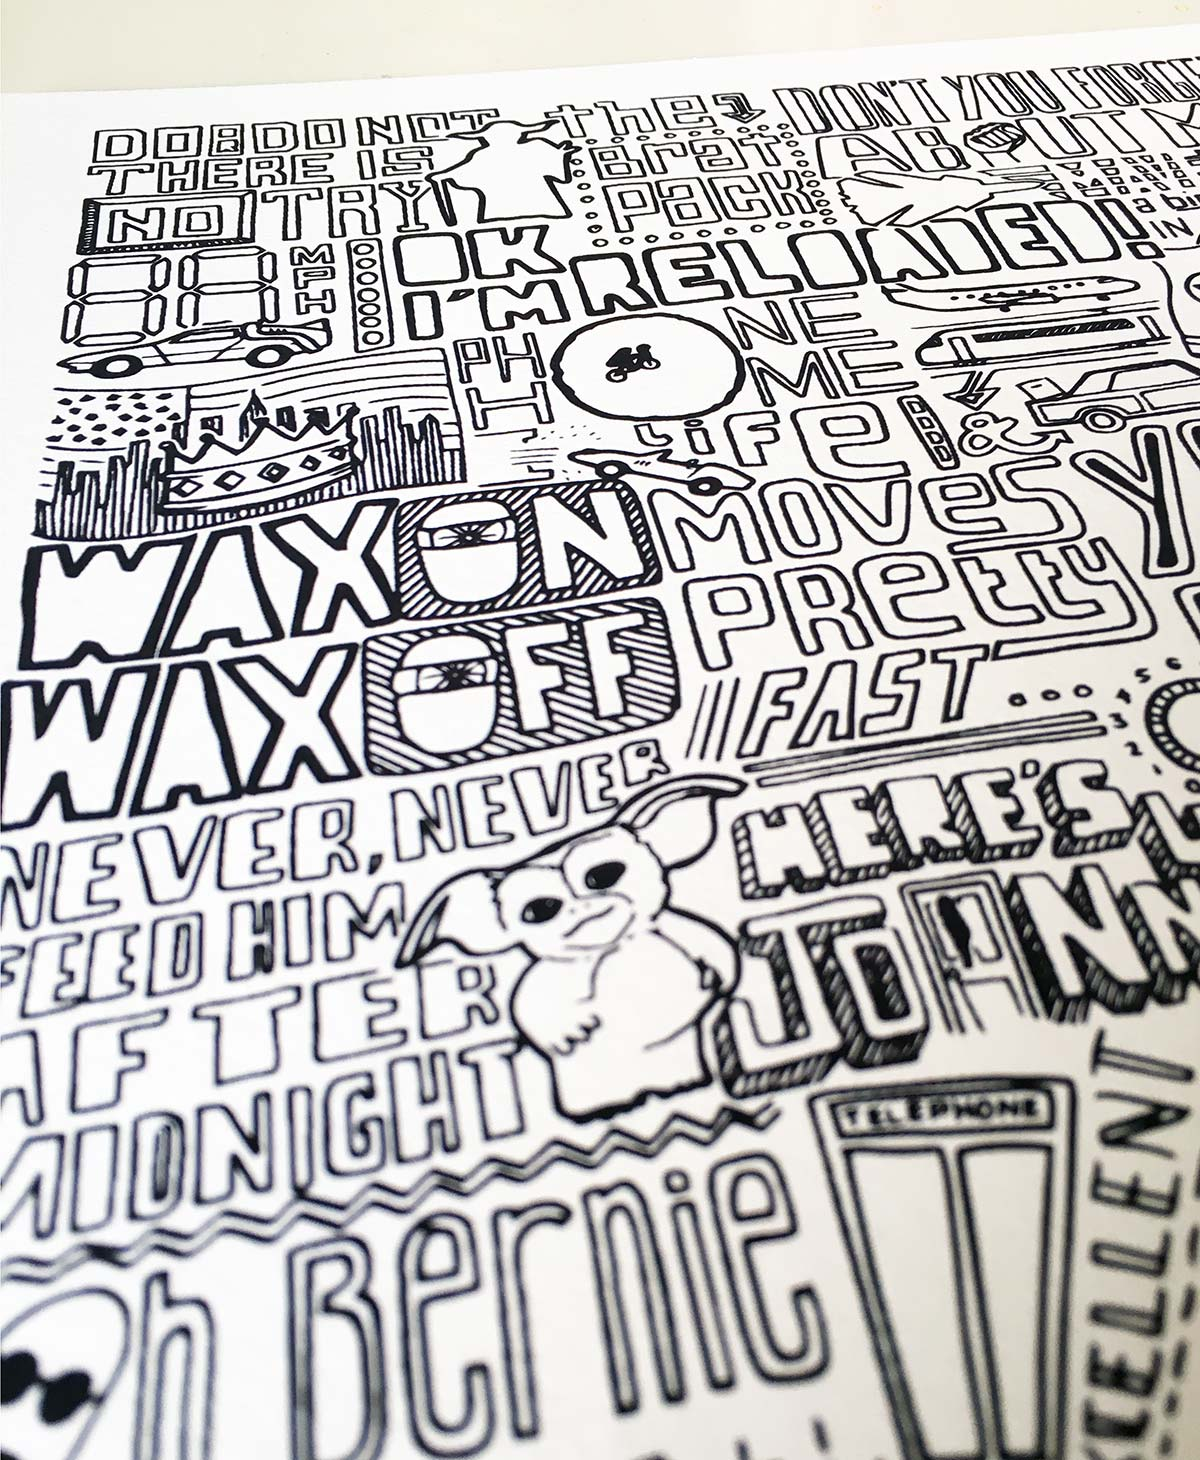 1980s Classic film print. Hand drawn pop culture prints from Sketchbook Design